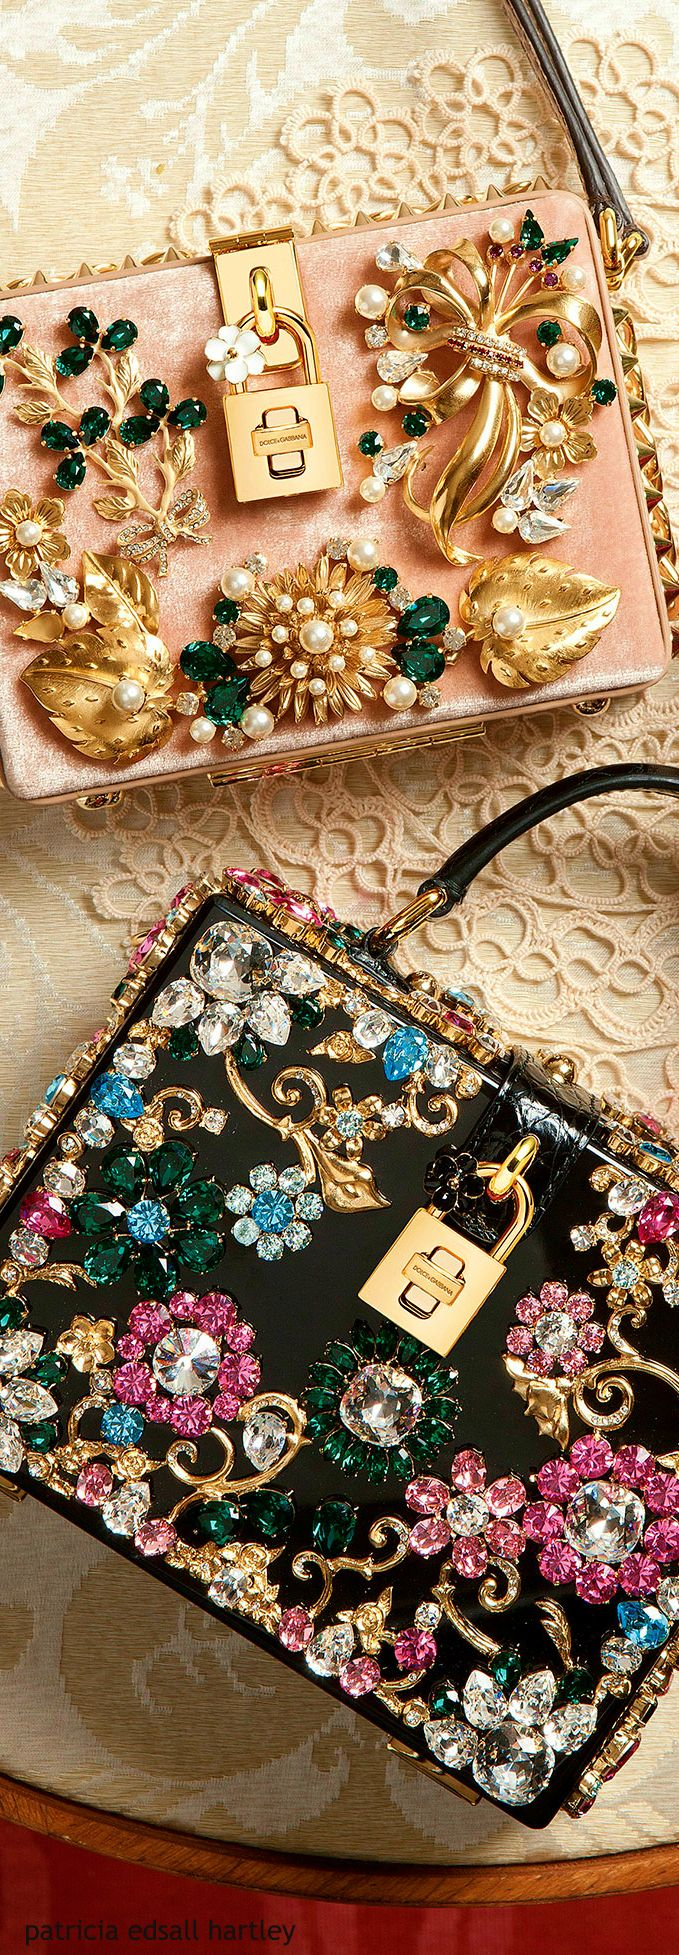 Dolce & Gabbana - Winter 2016 Little works of art, aren't they.